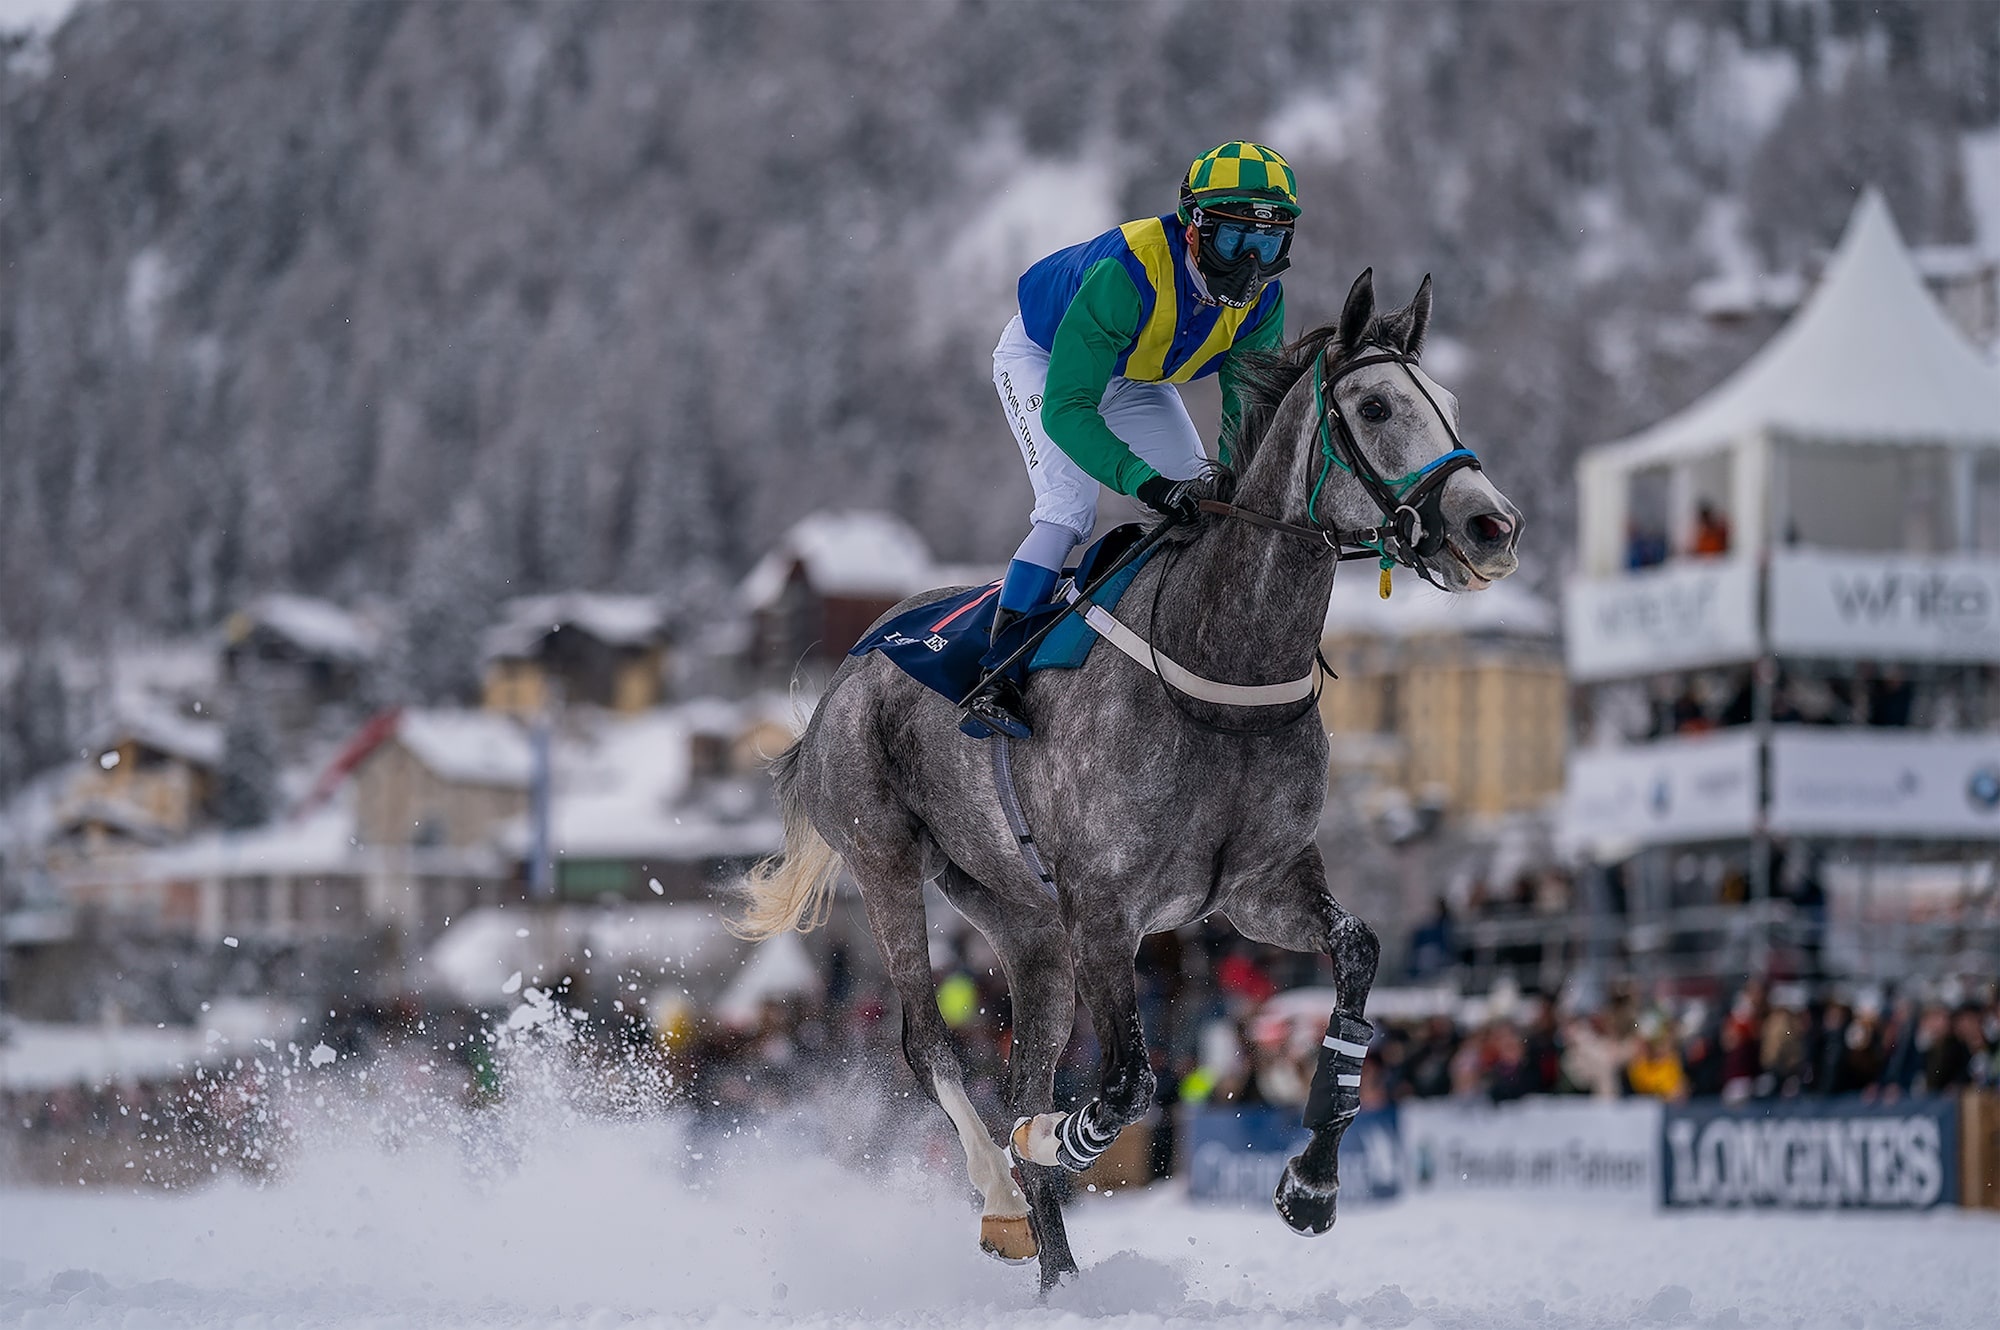 bob martin sony alpha 9 jockey on a grey horse running at speed through snow